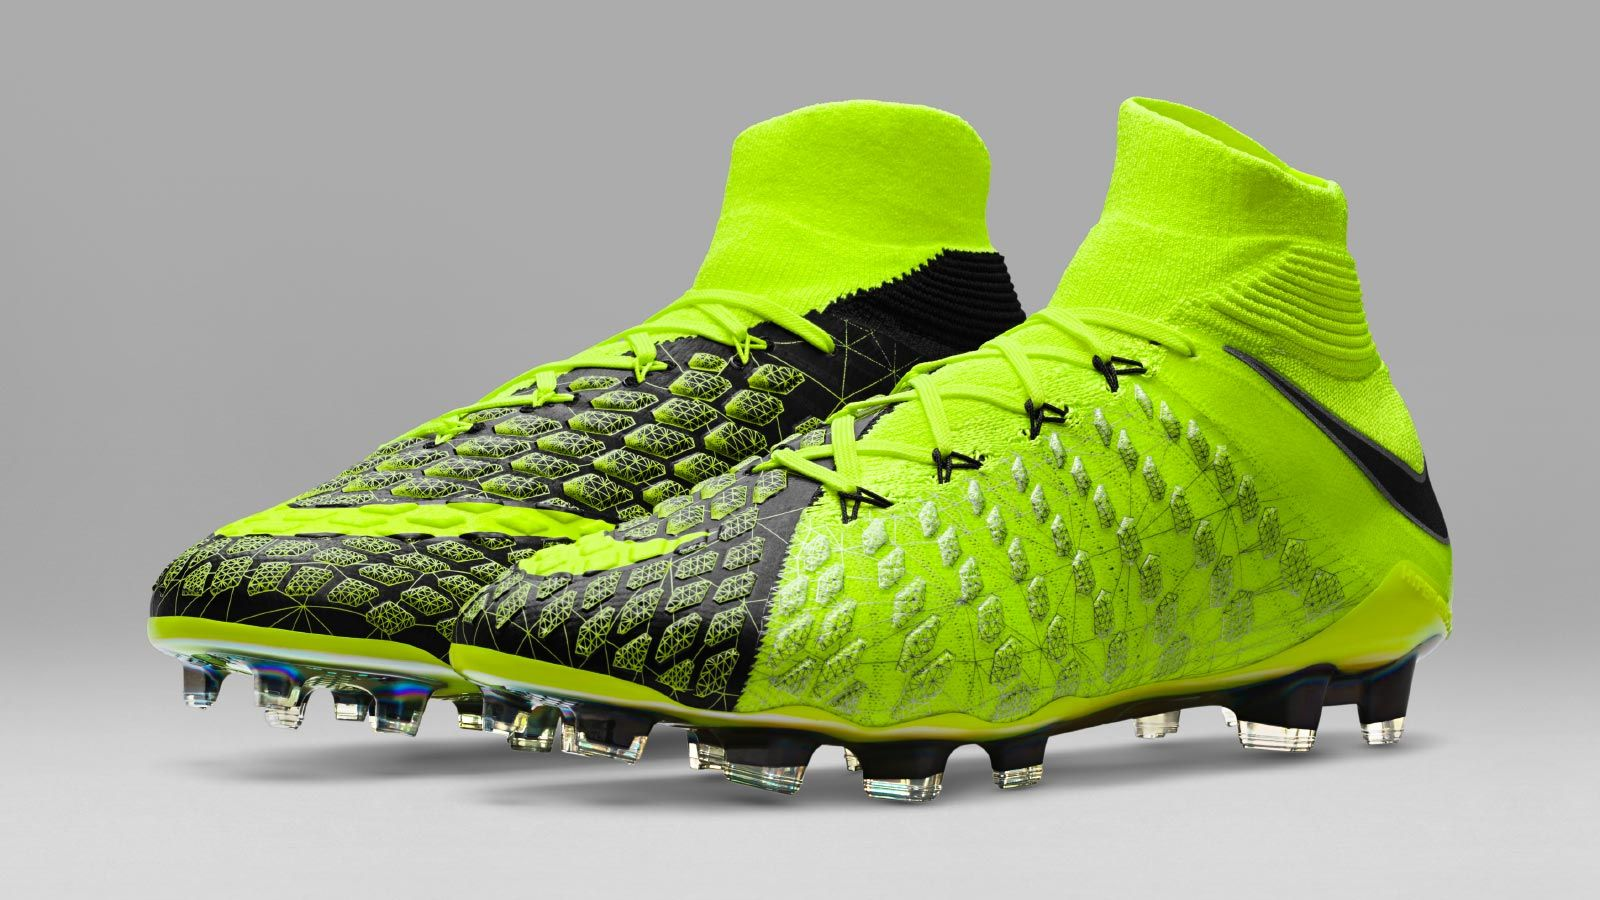 225a3145330 The limited-edition Nike Hypervenom Phantom III EA Sports boots introduce a  striking design